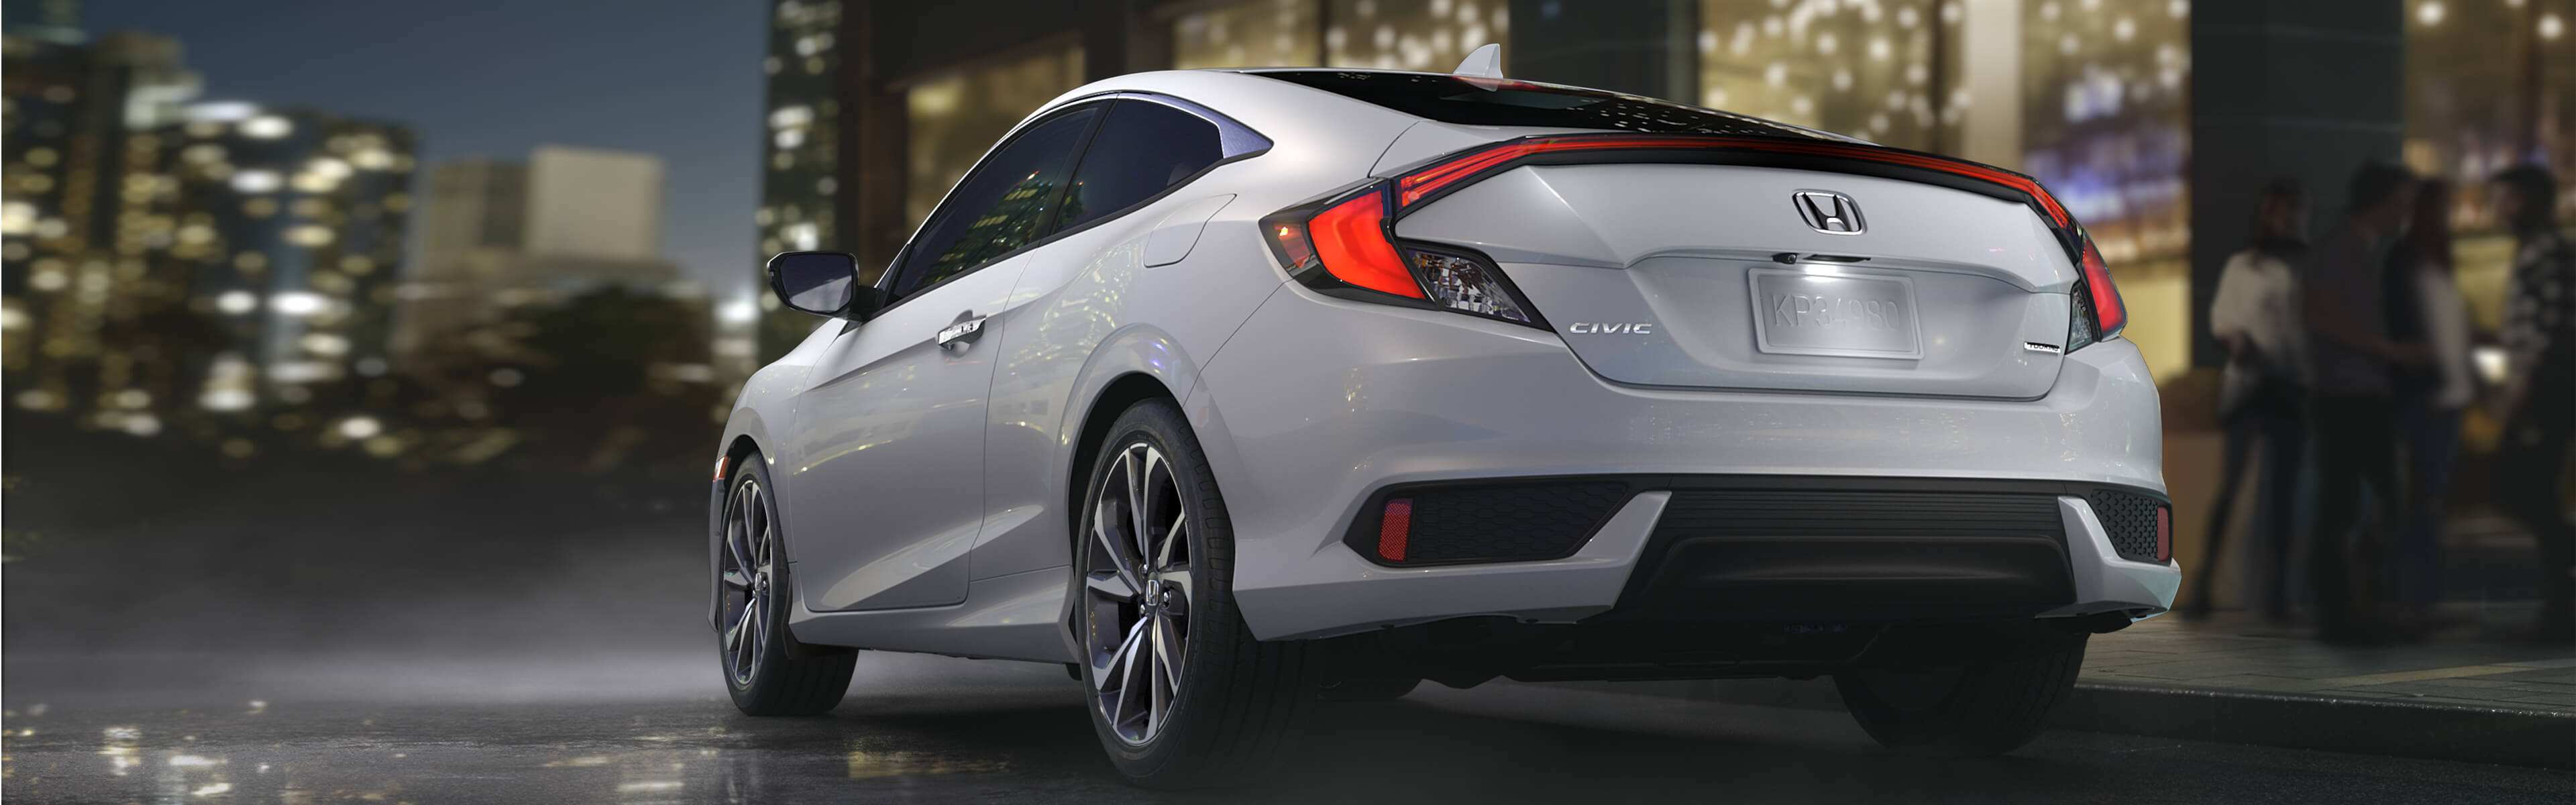 15 New 2020 Honda Civic Coupe Redesign And Concept